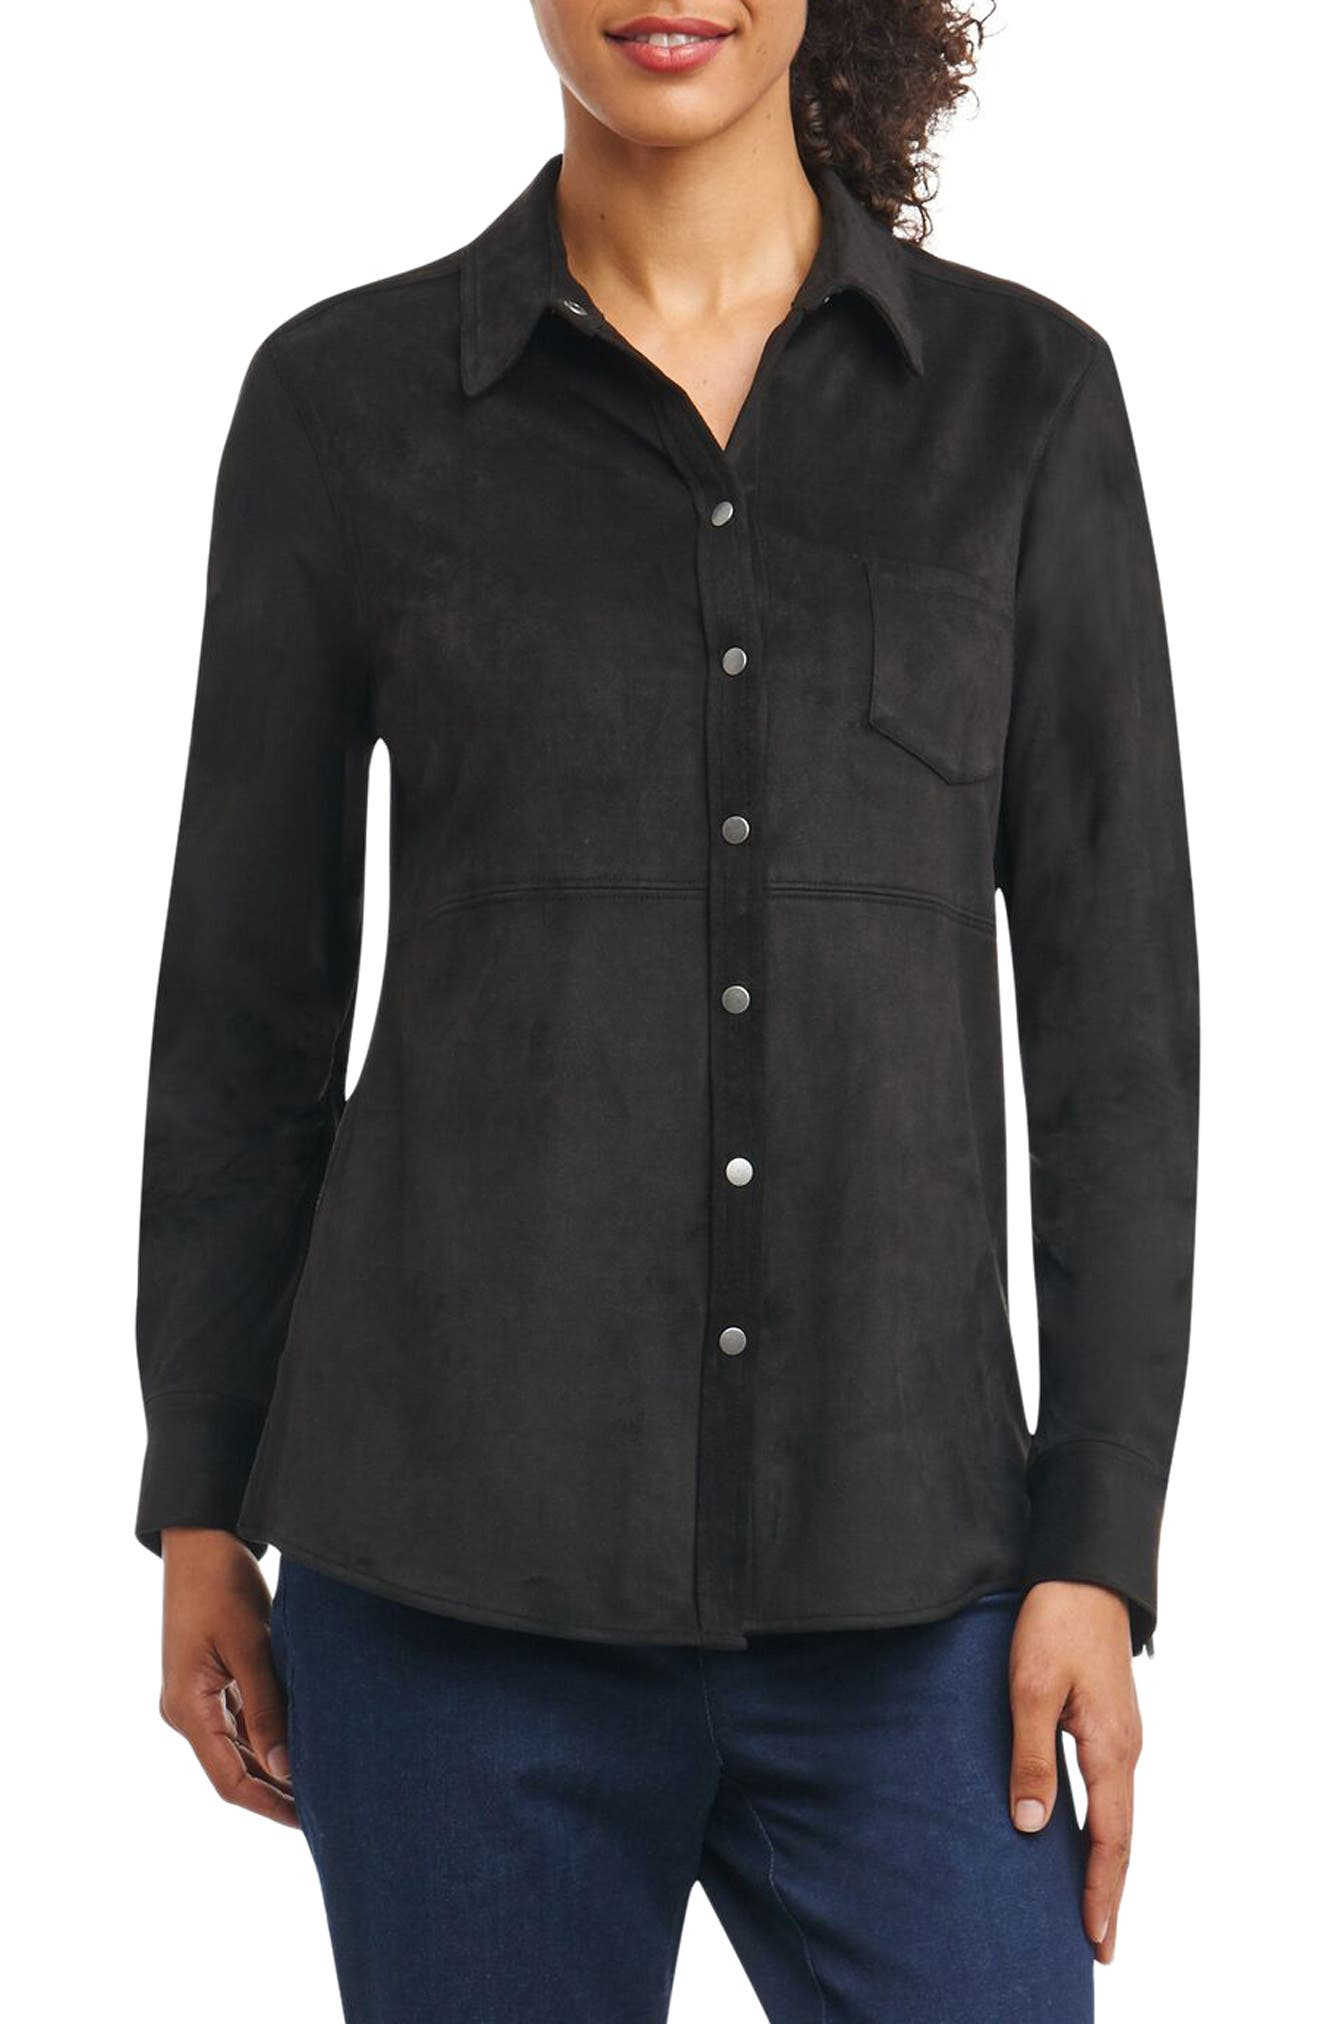 Jena Faux Suede Shirt,                         Main,                         color, 001